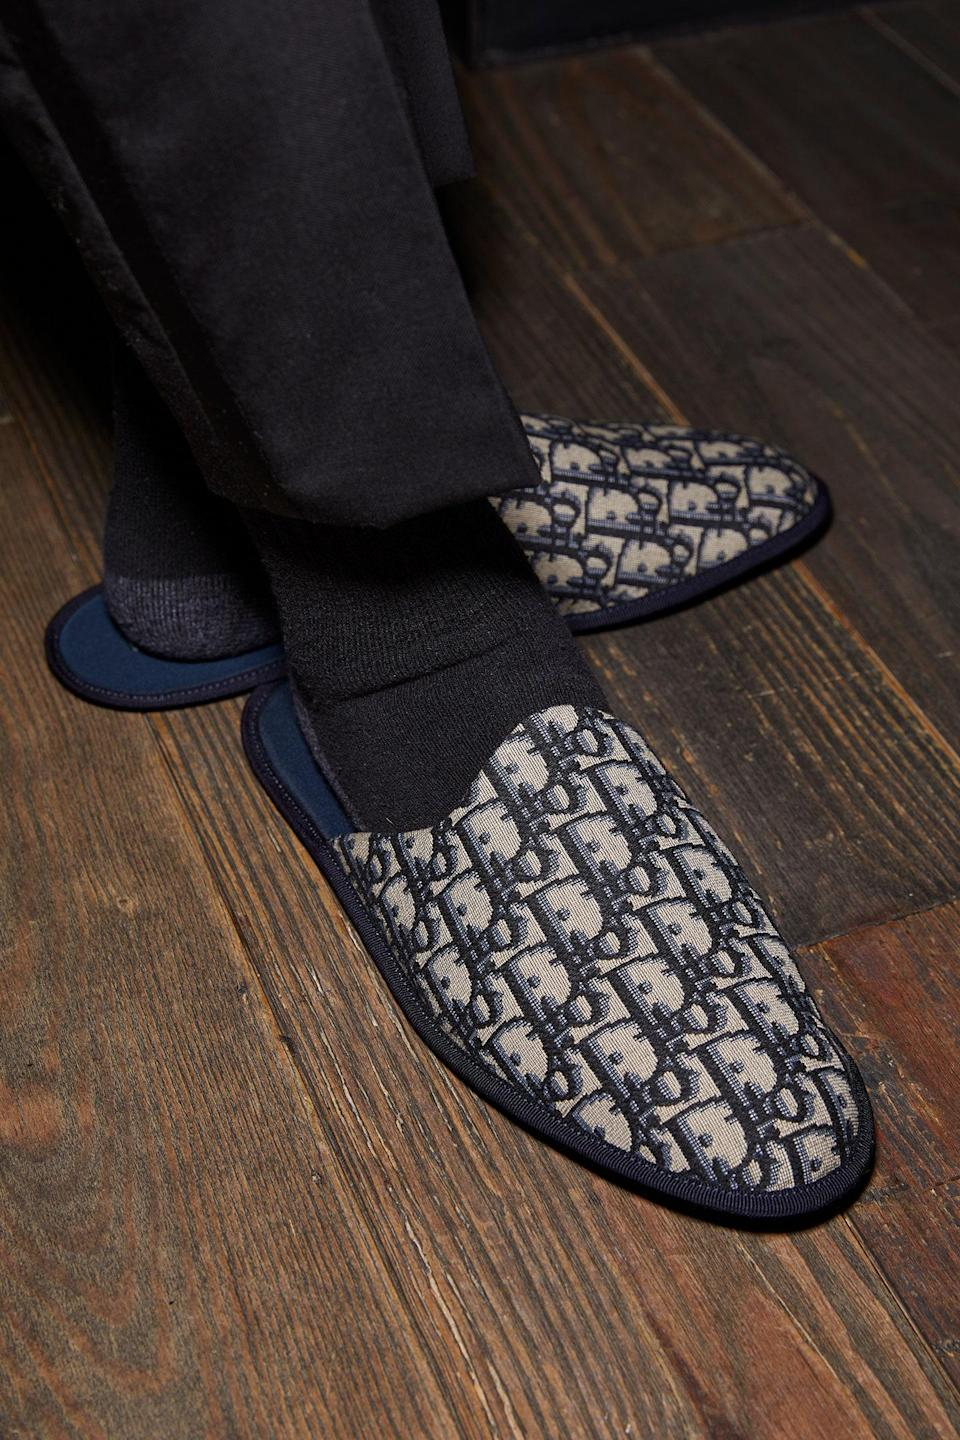 Dior Oblique slippers. The perfect balance between style and comfort.